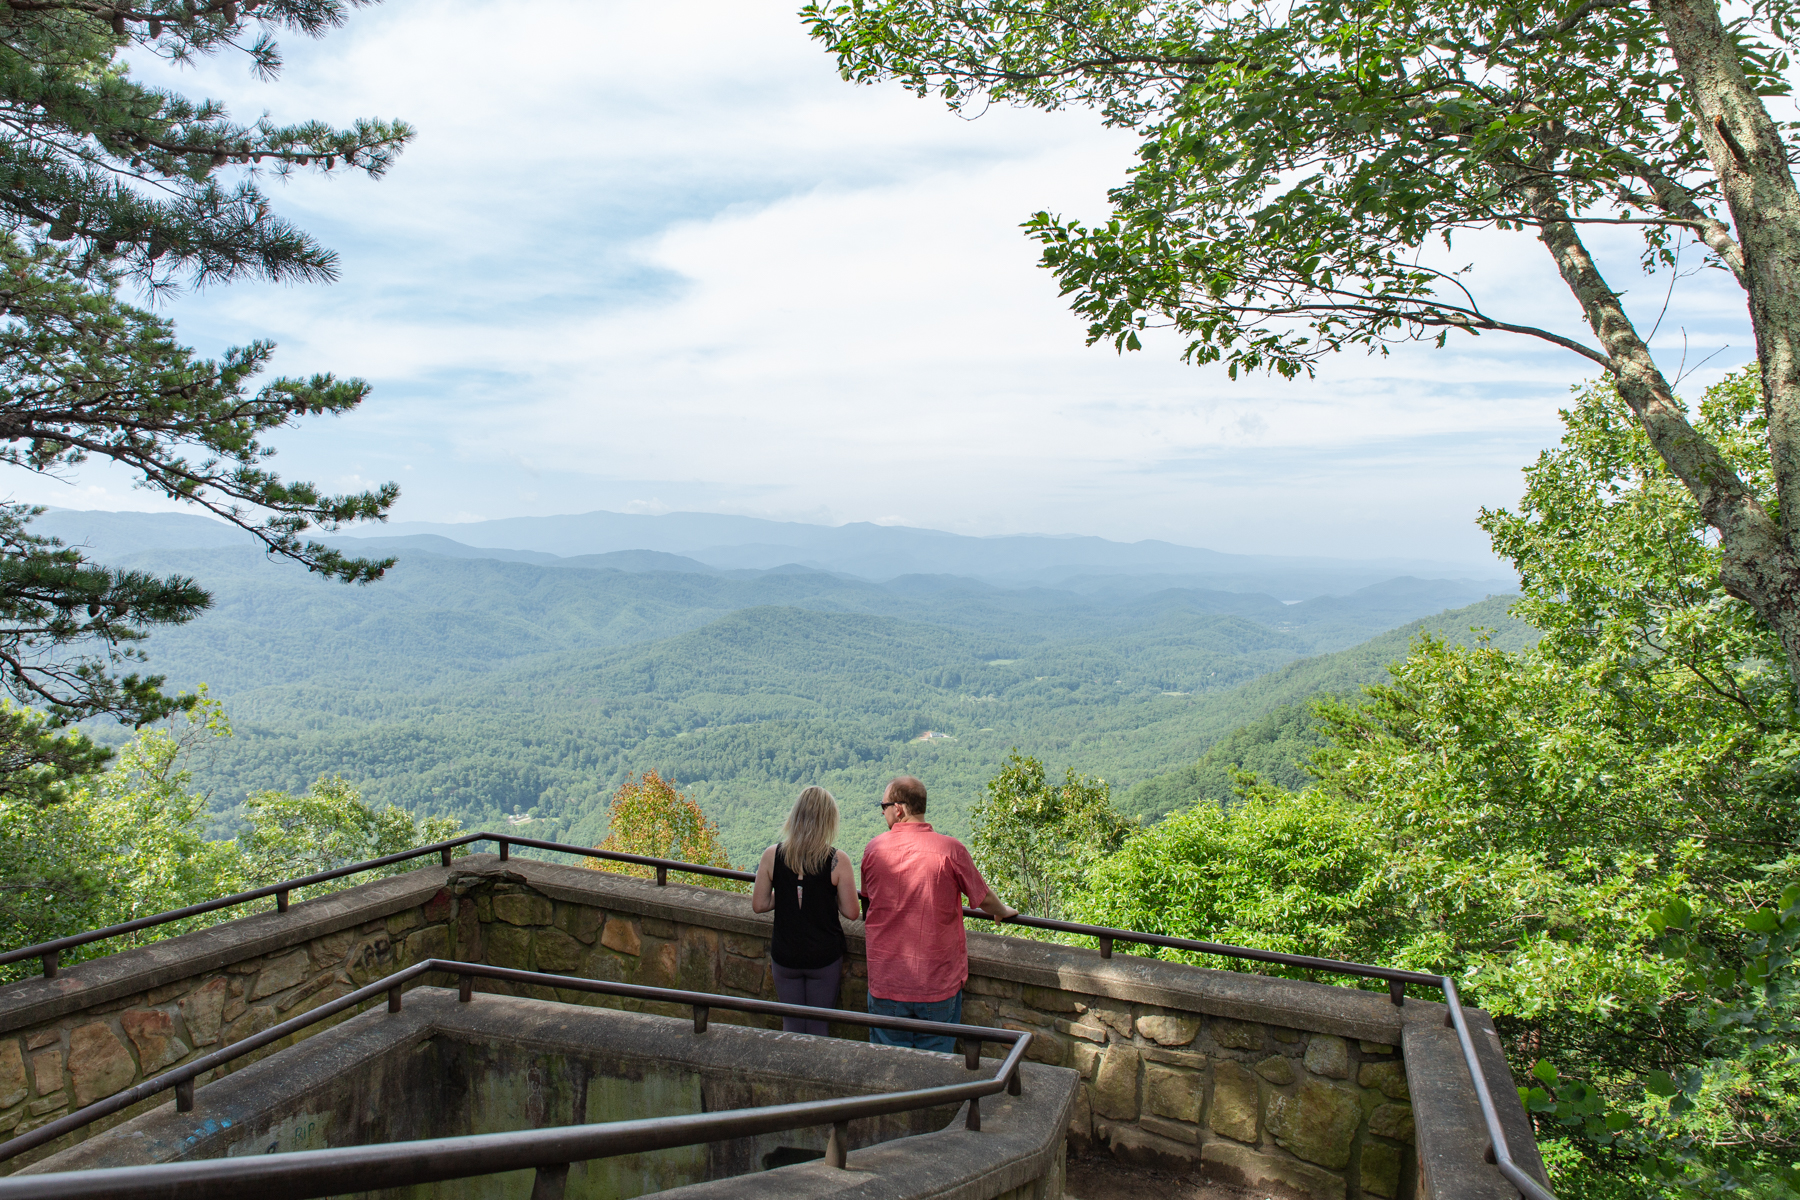 The unsuspecting bride enjoys the view of the Smokies from Look Rock on the Foothills Parkway